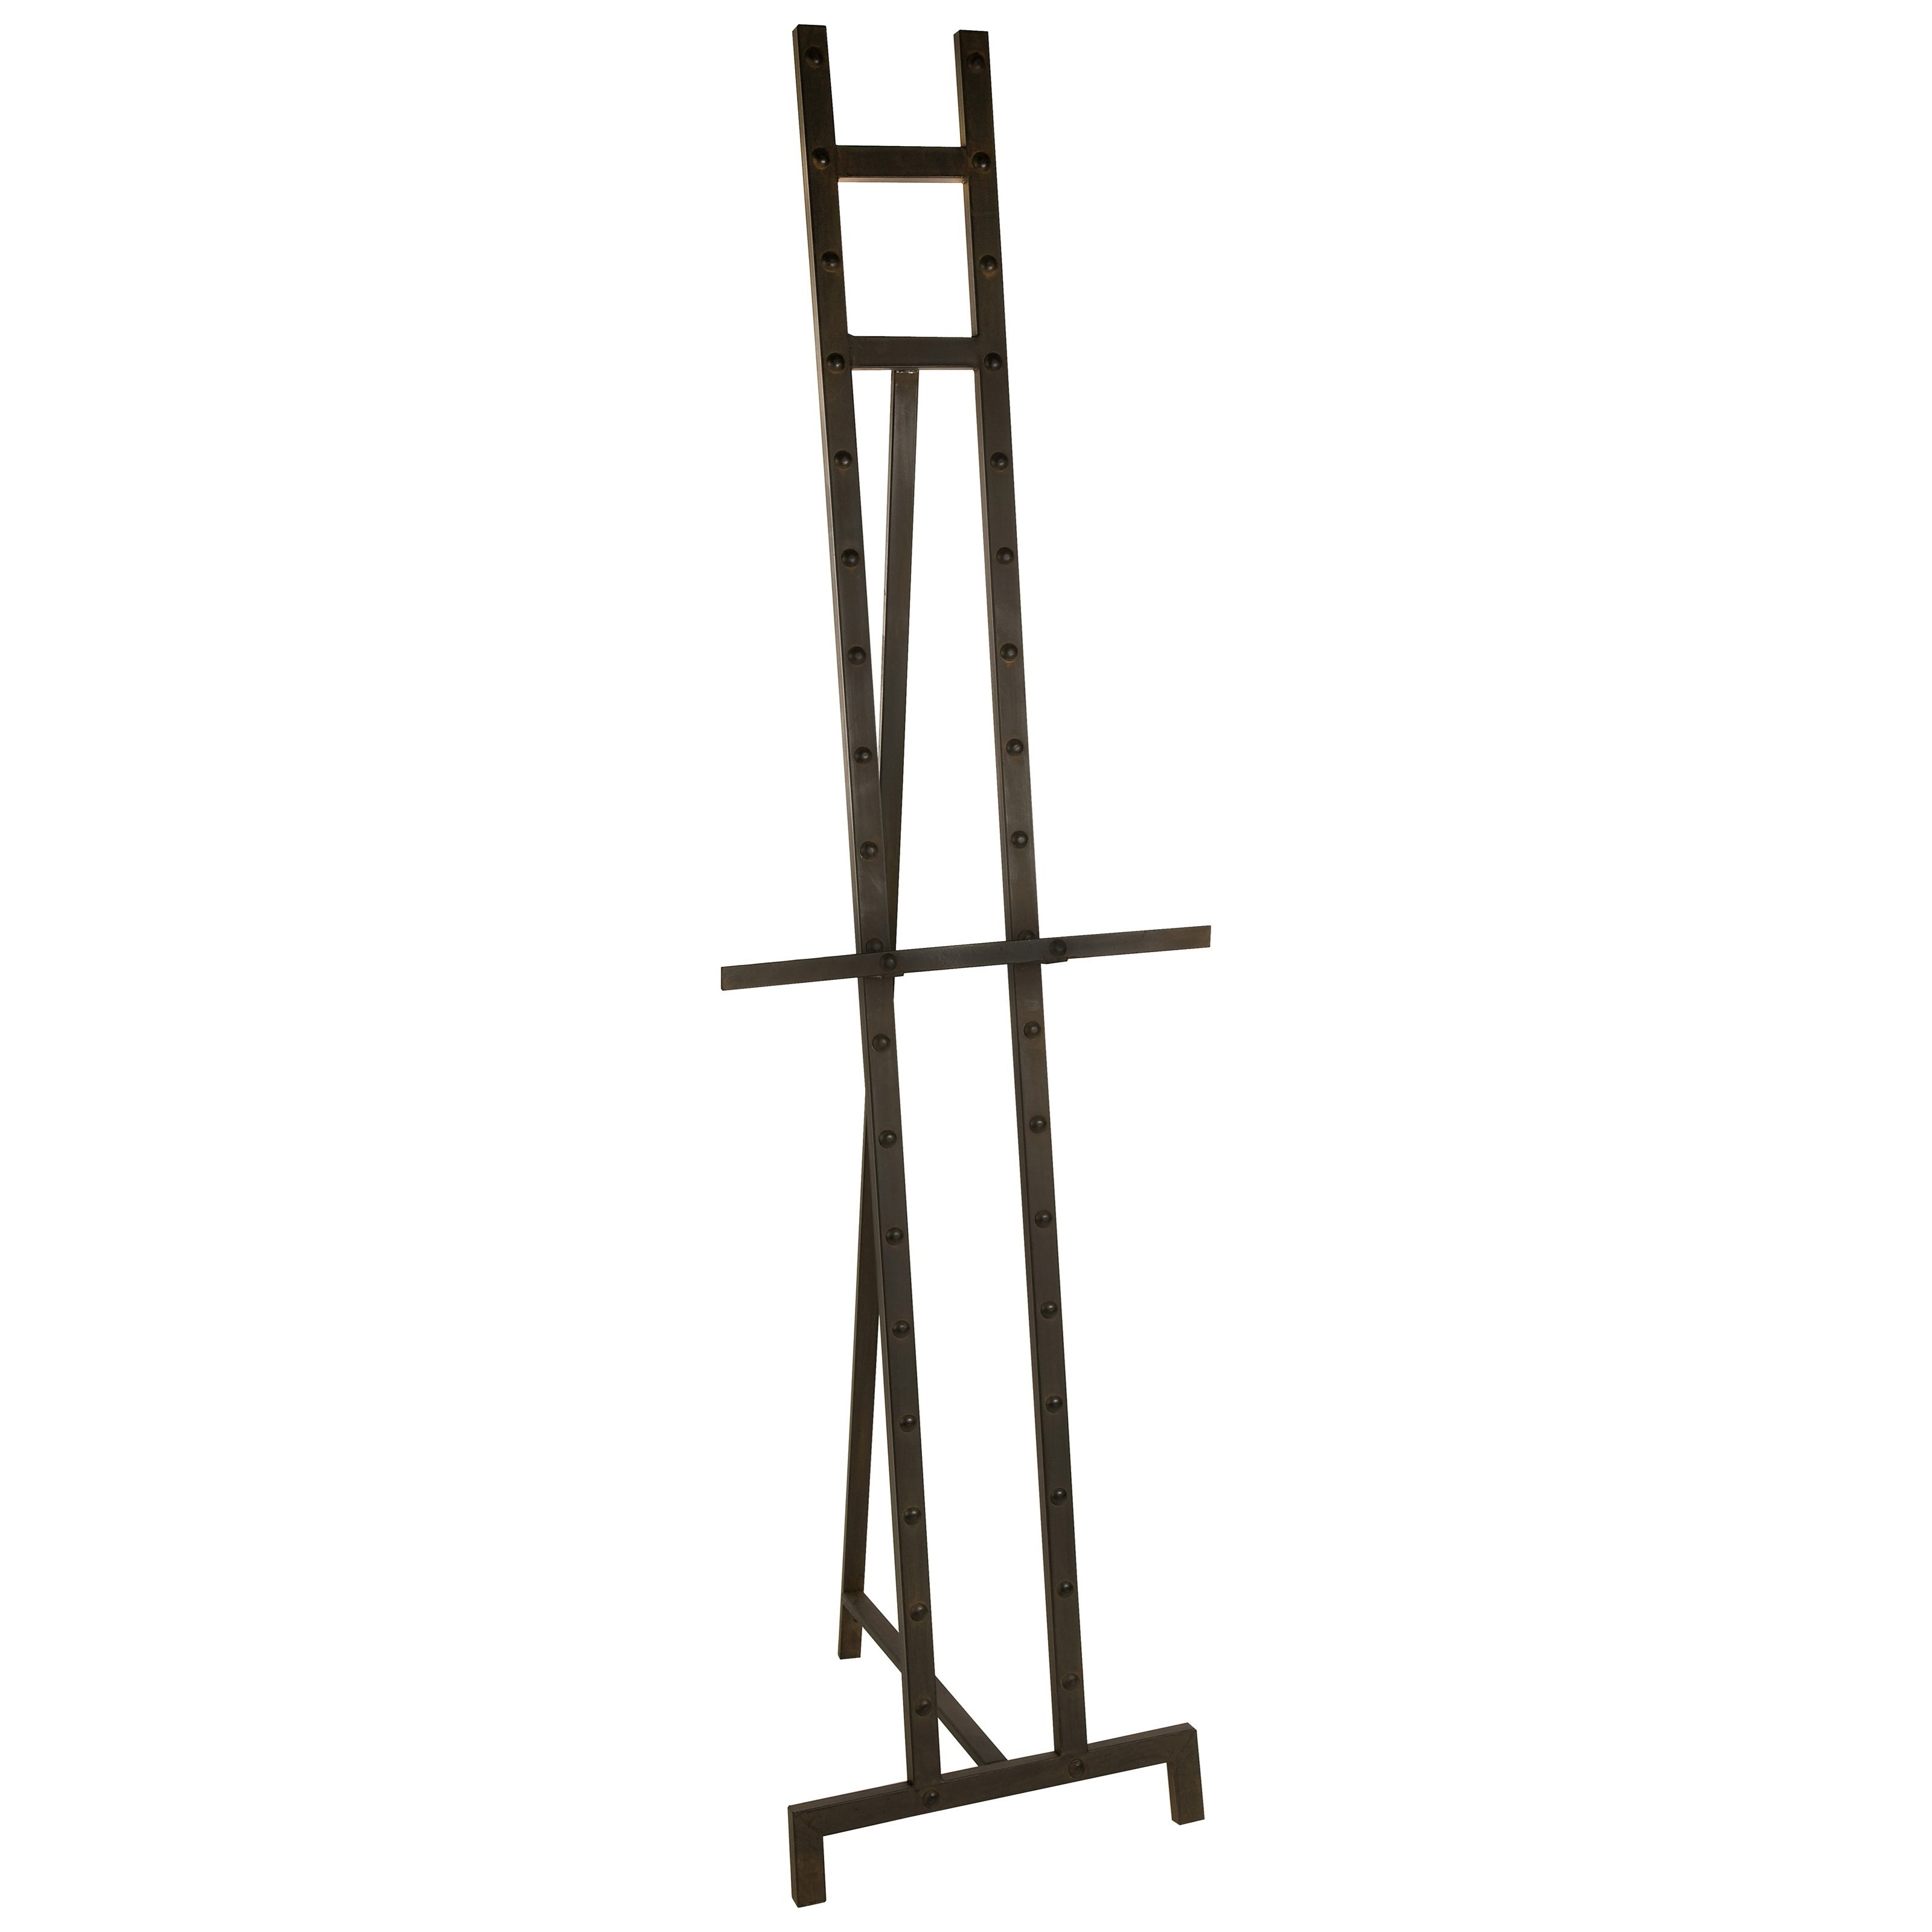 Carolyn Kinder Rupbert Iron Floor Easel by IMAX Worldwide Home at Miller Waldrop Furniture and Decor